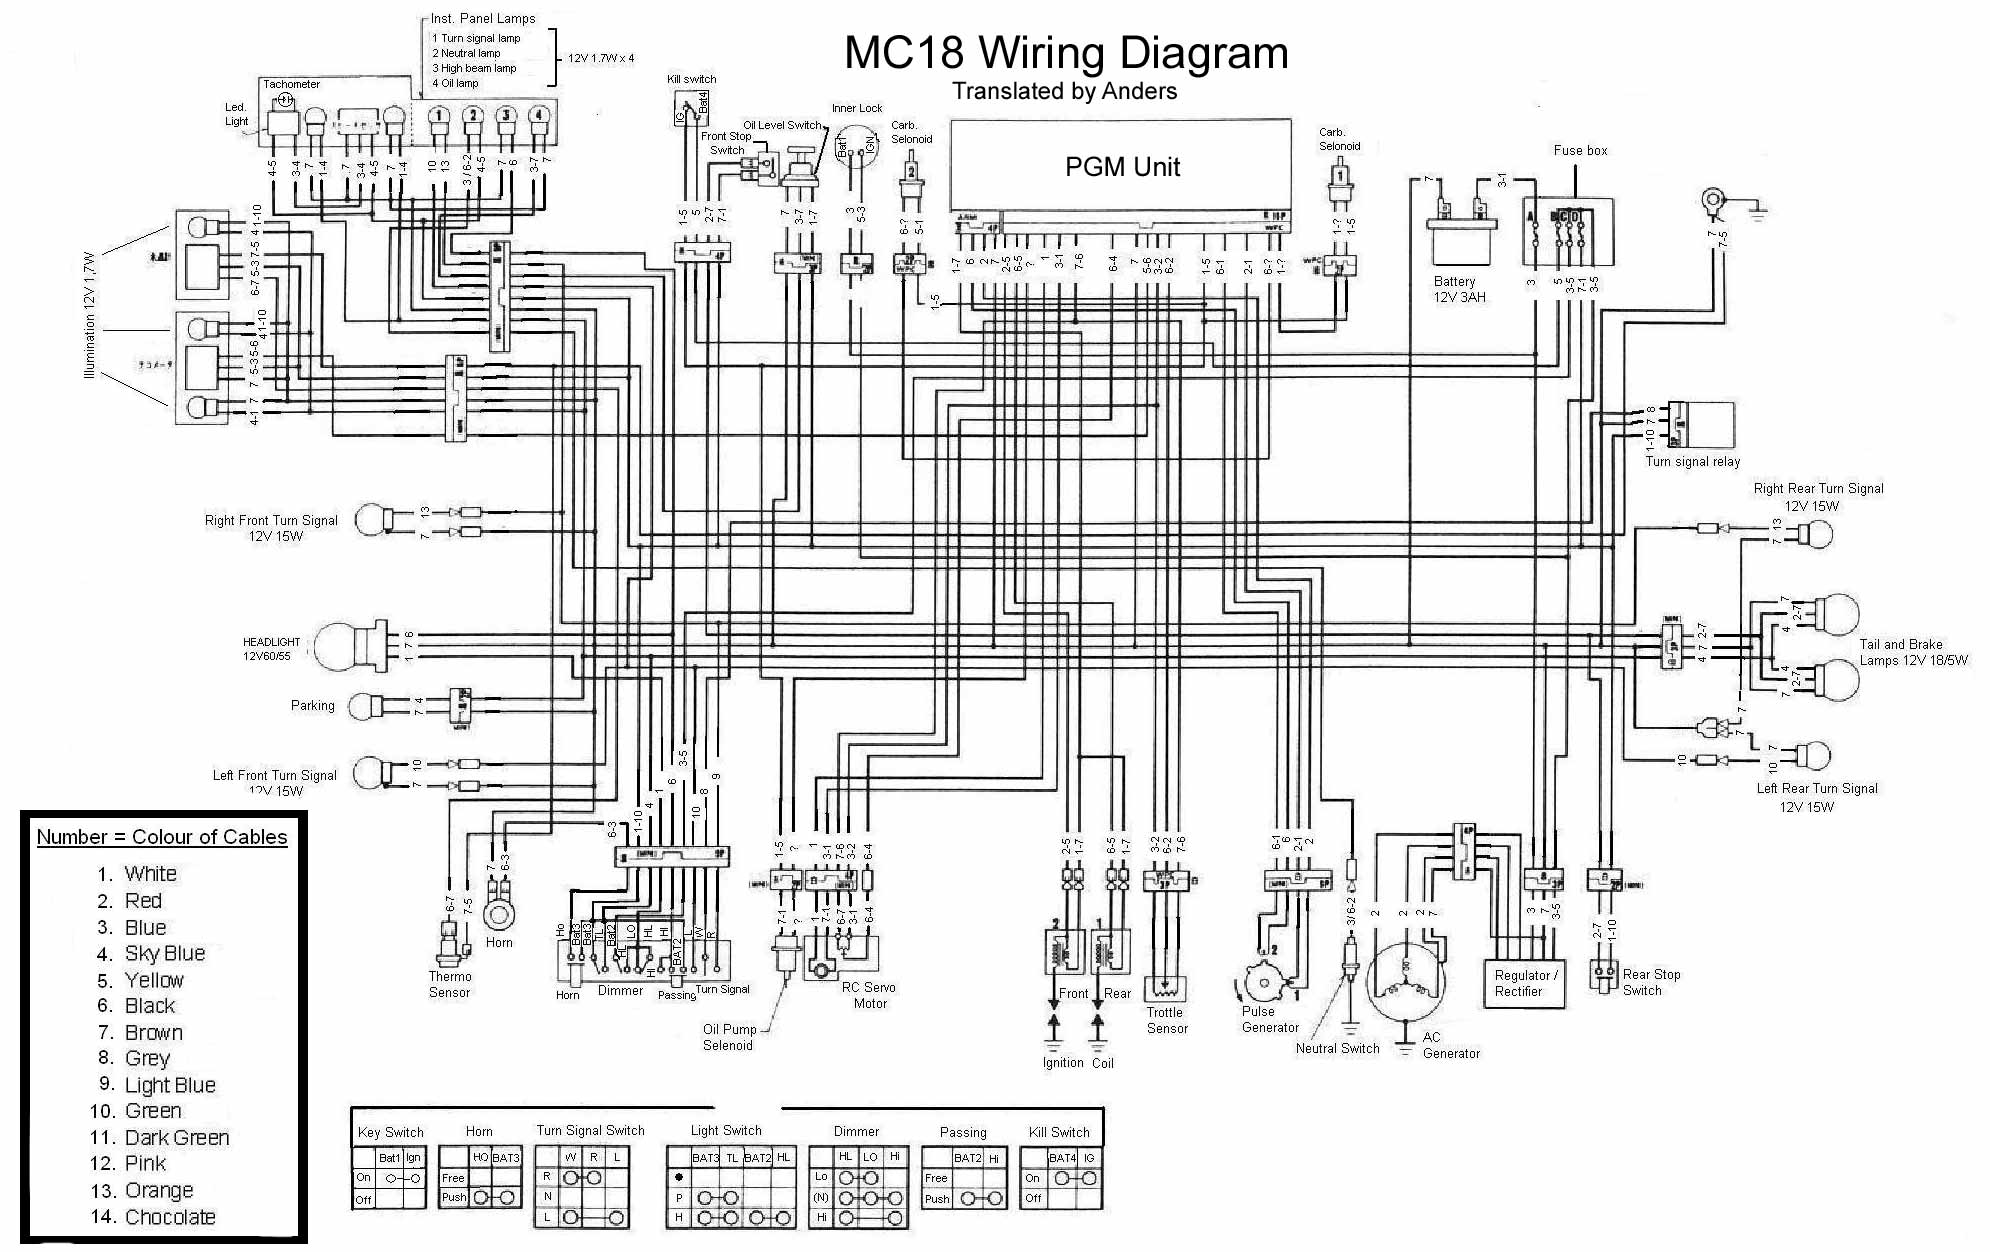 Wiring Diagram Honda B16a : Photo album honda mc nsr